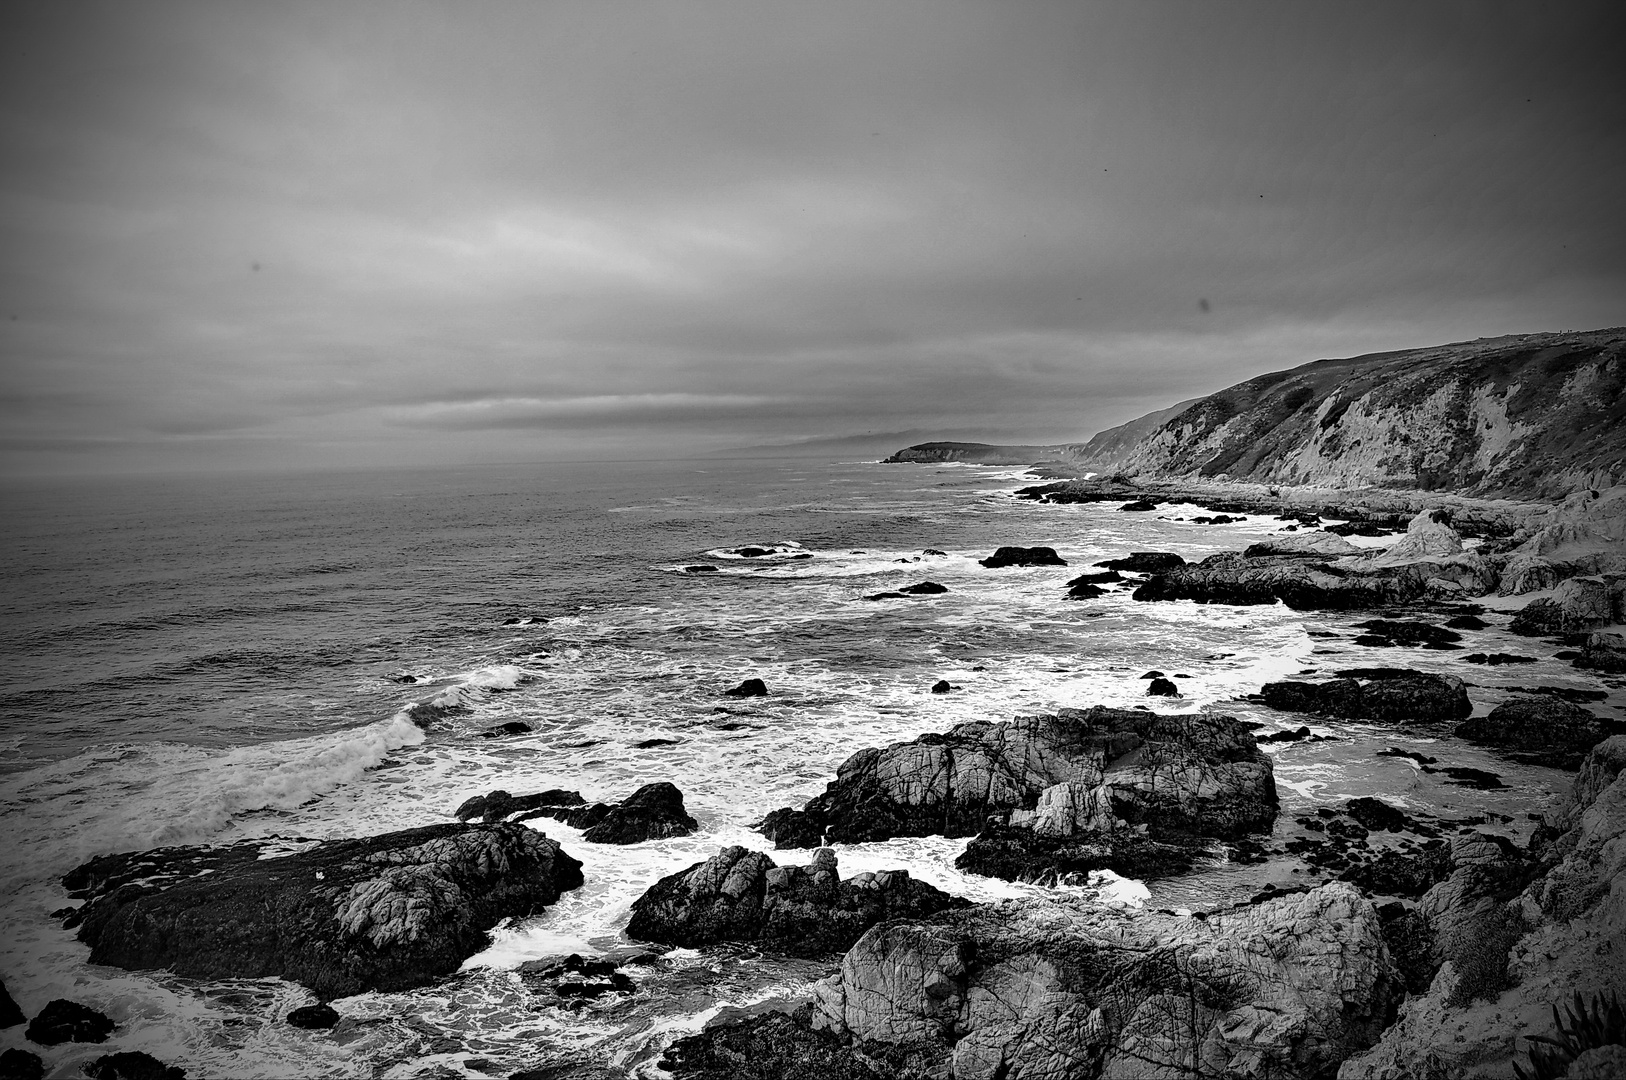 Bodega Bay - Waiting for the whales